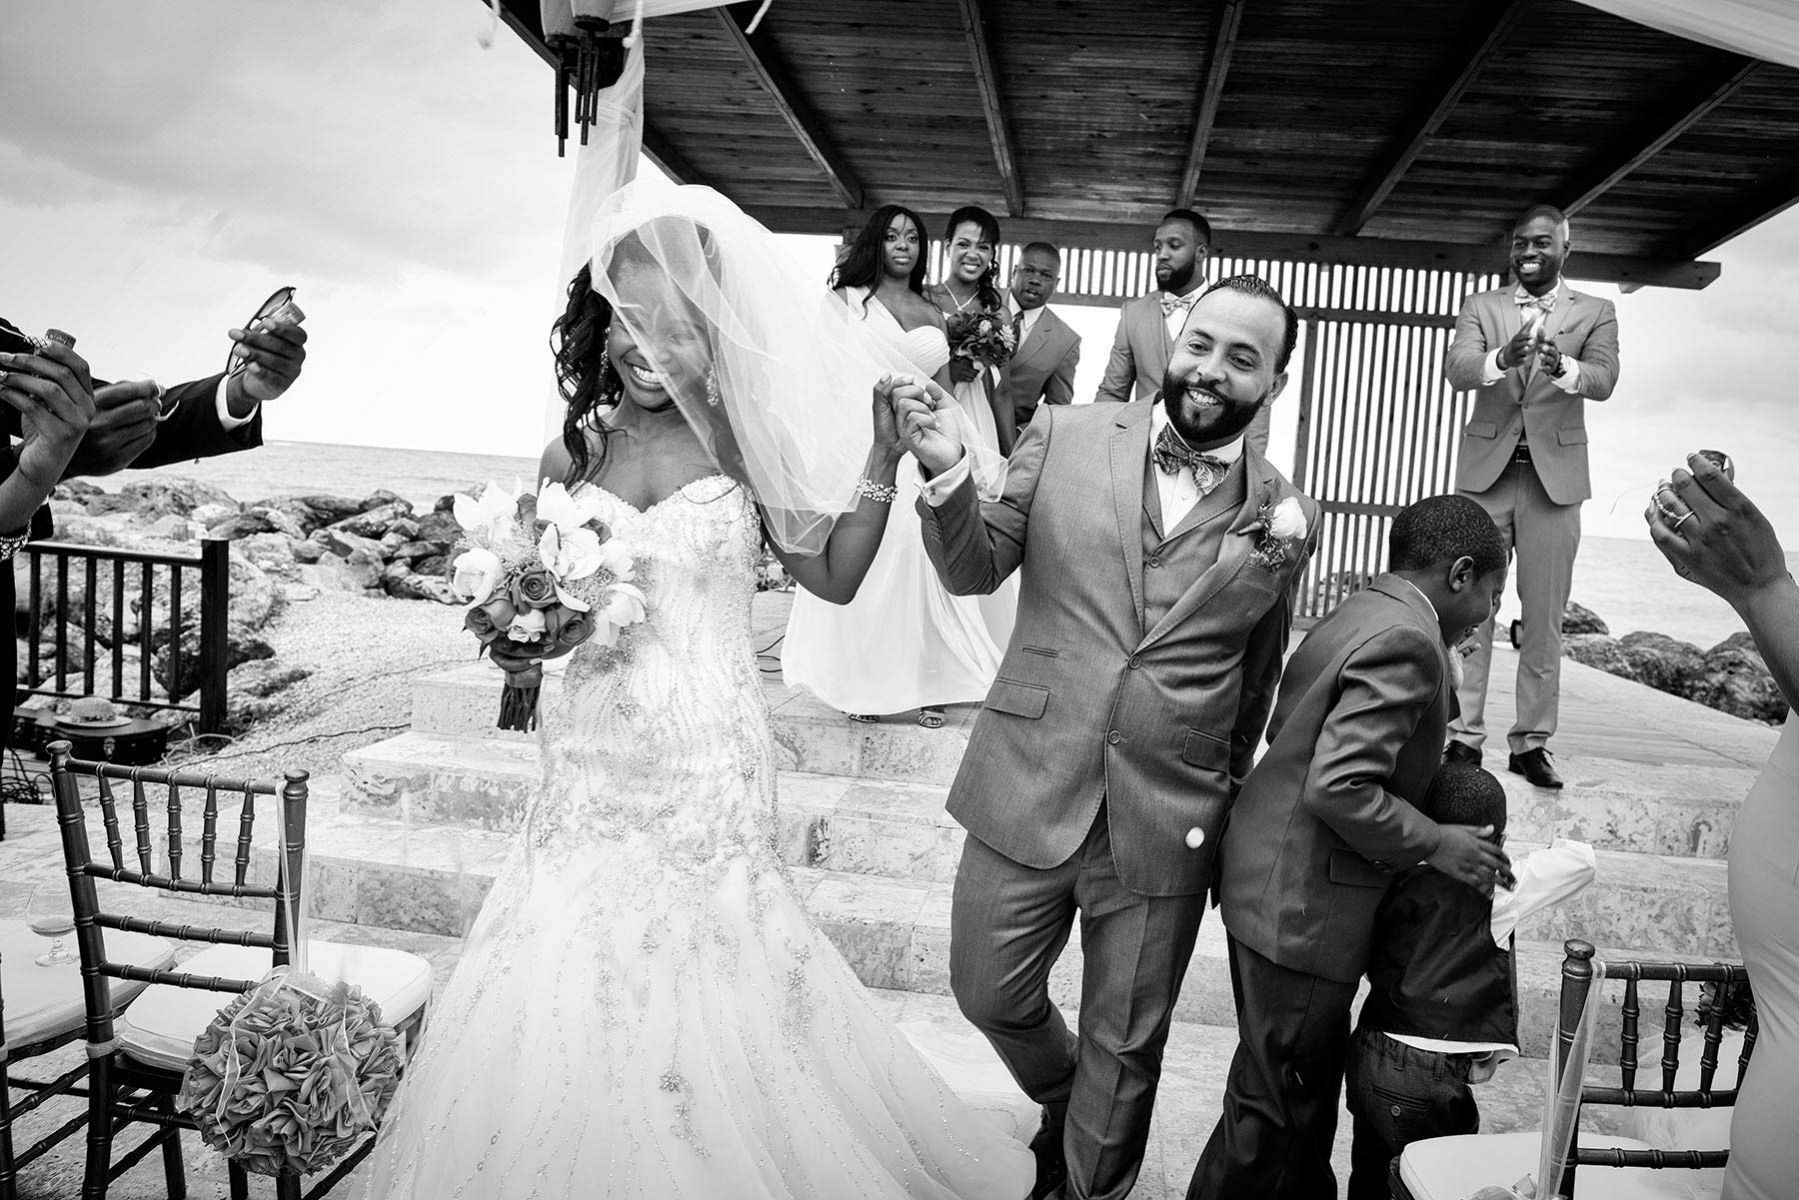 Wedding in Jamaica, exit of the bride and groom